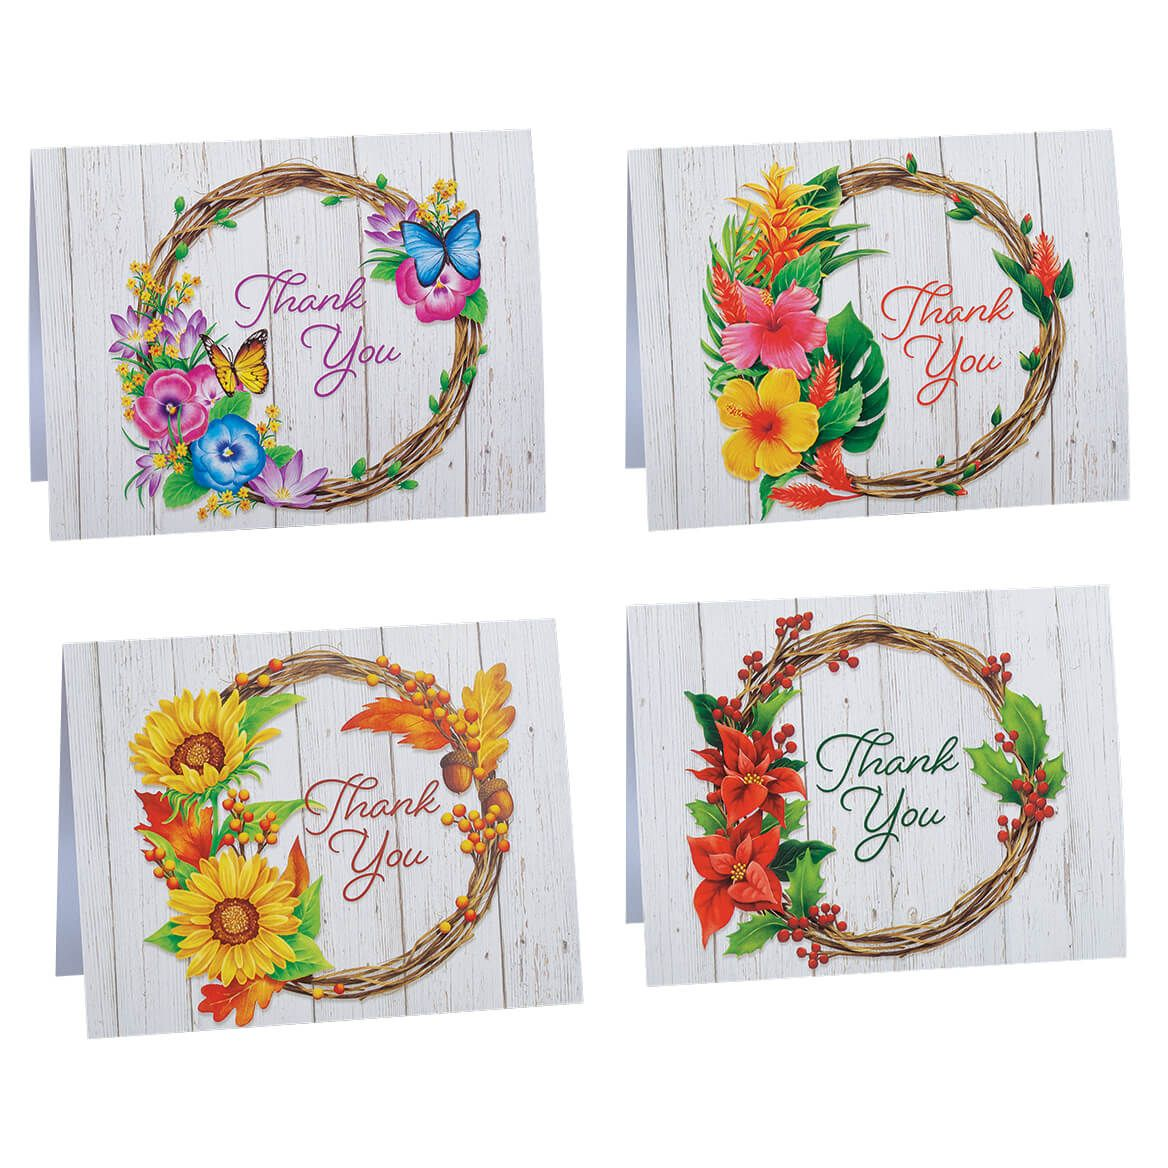 Seasonal Floral Wreath Thank You Cards, Set of 20-372513